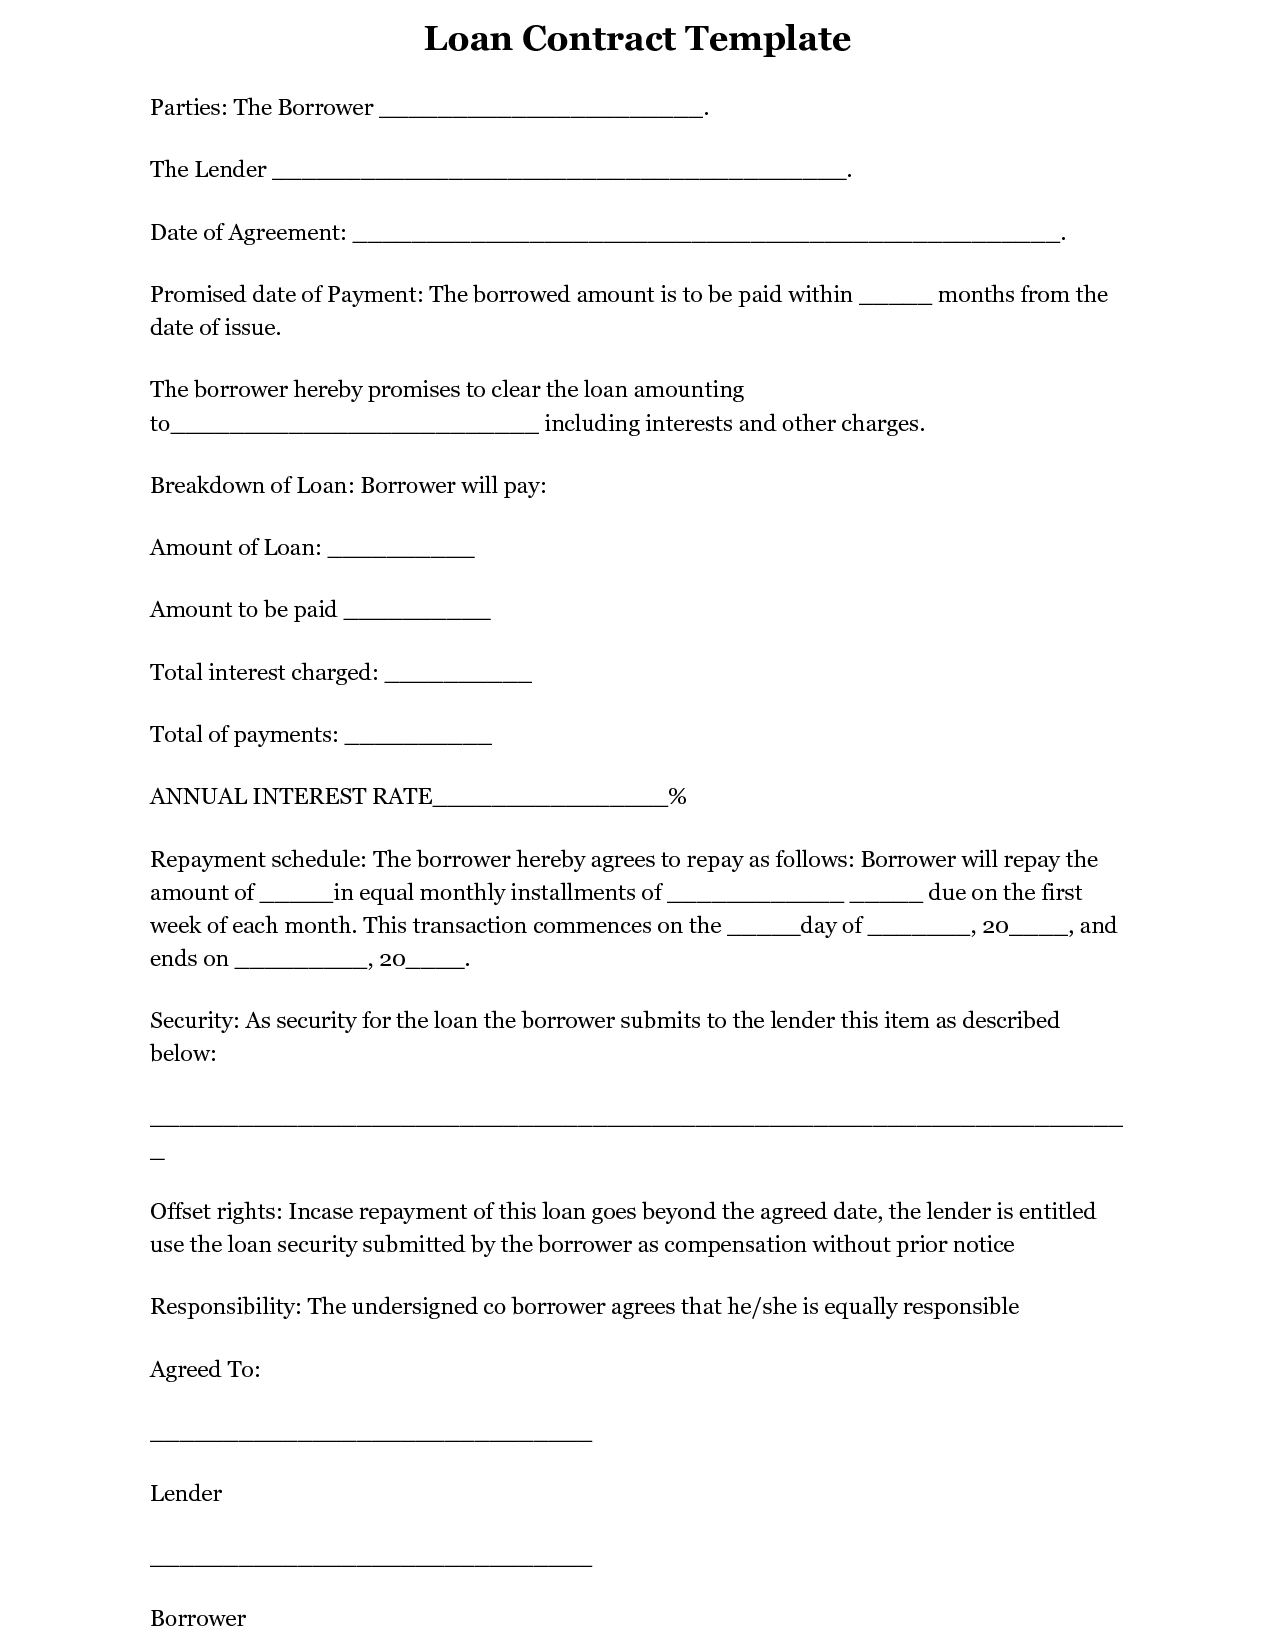 simple interest loan agreement template – Agreement Letter for Loan